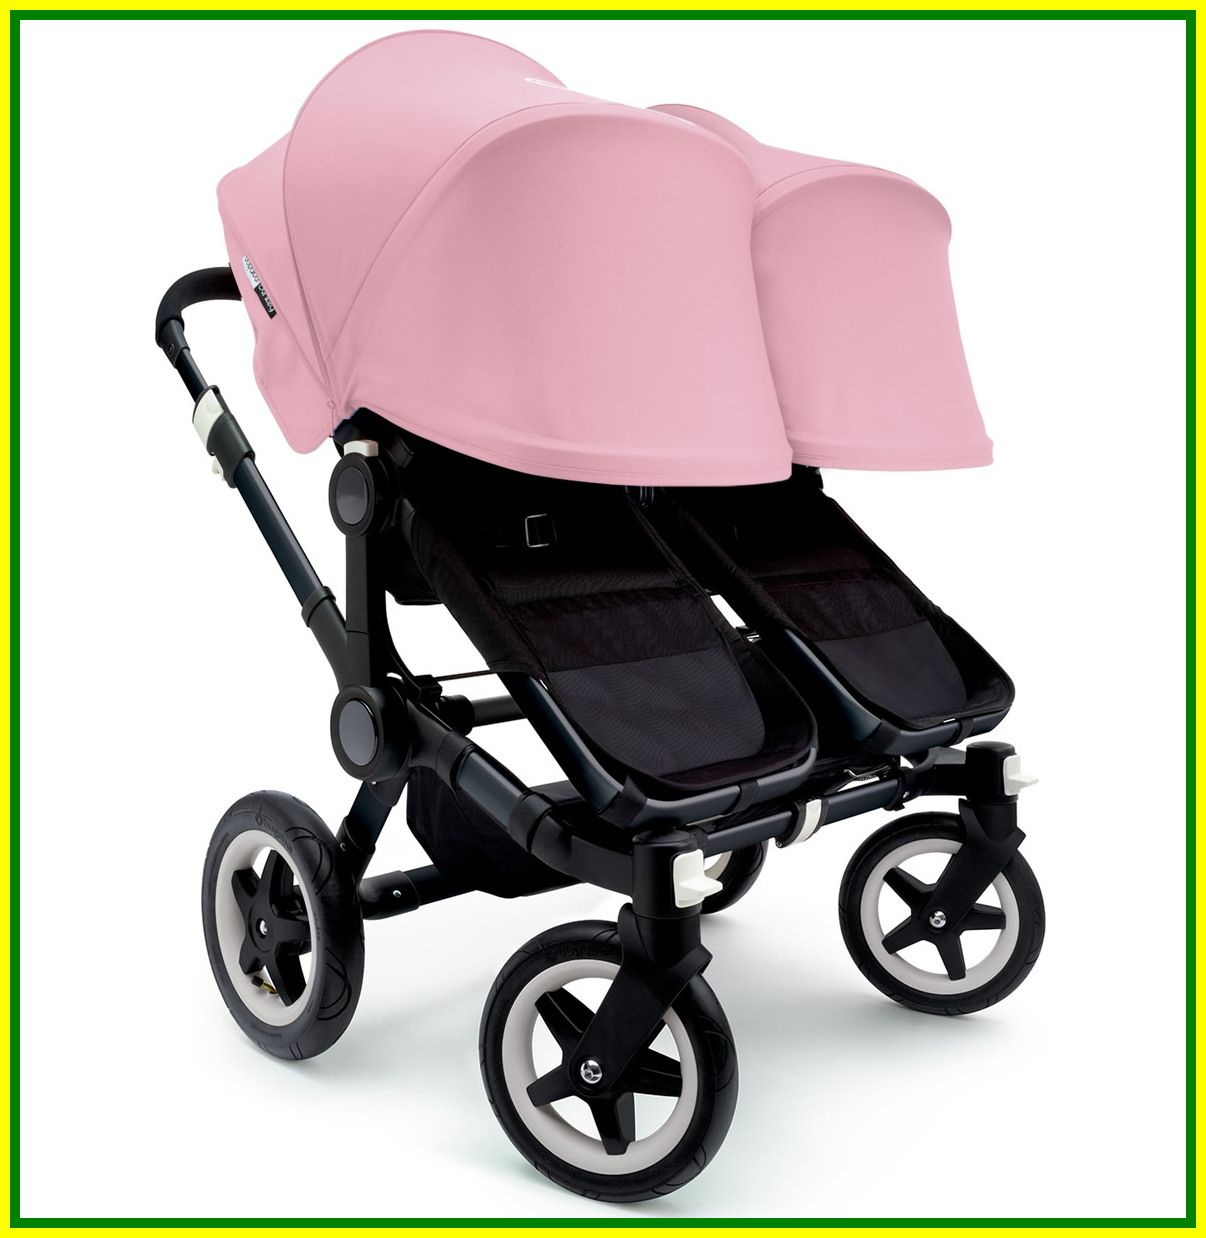 106 reference of stroller Bugaboo bugaboo donkey2 in 2020